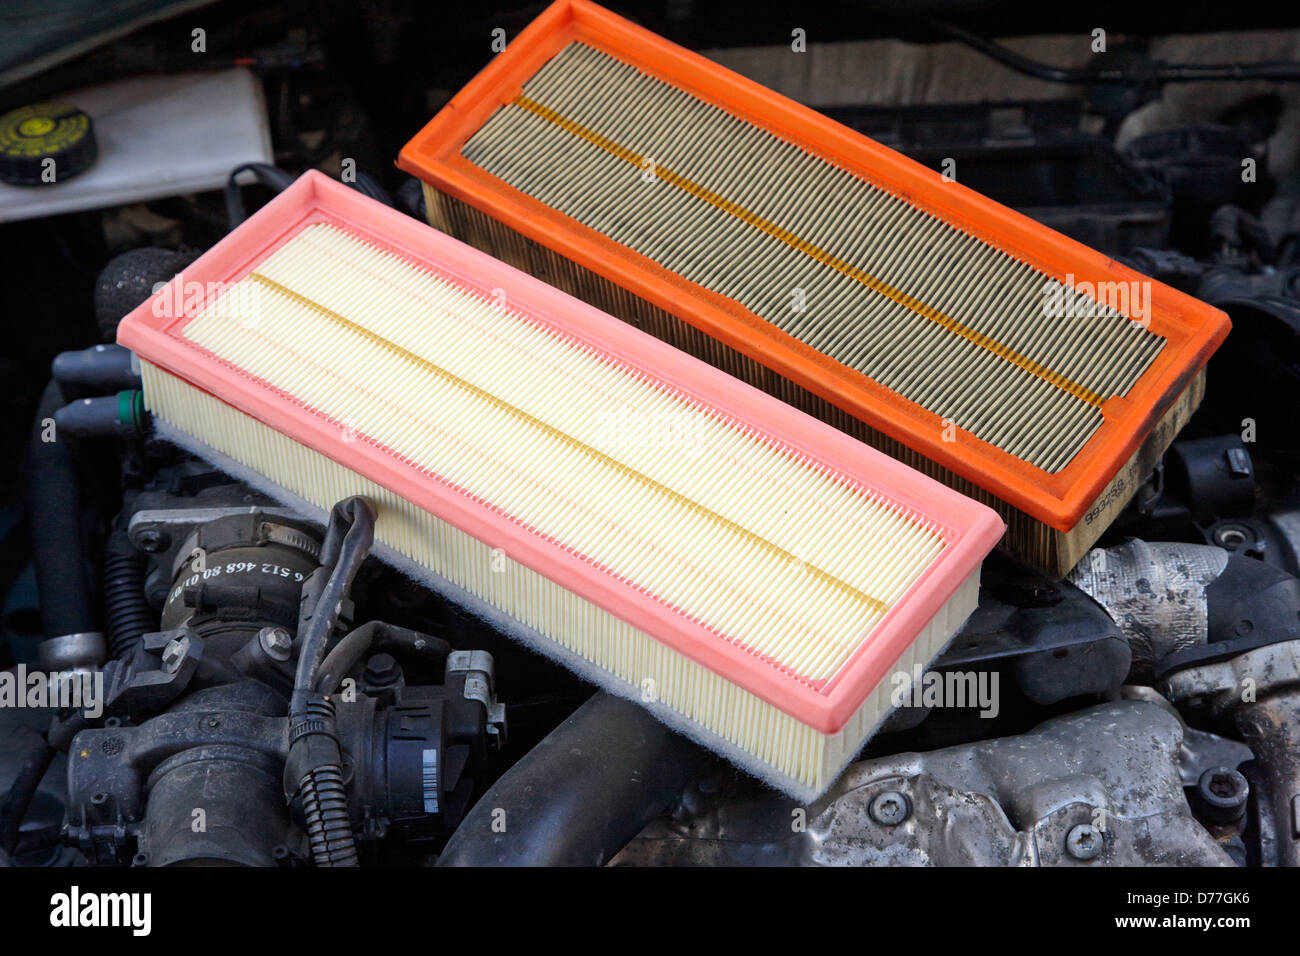 dirty air filter with replacement clean new filter in a car engine  compartment - Stock Image